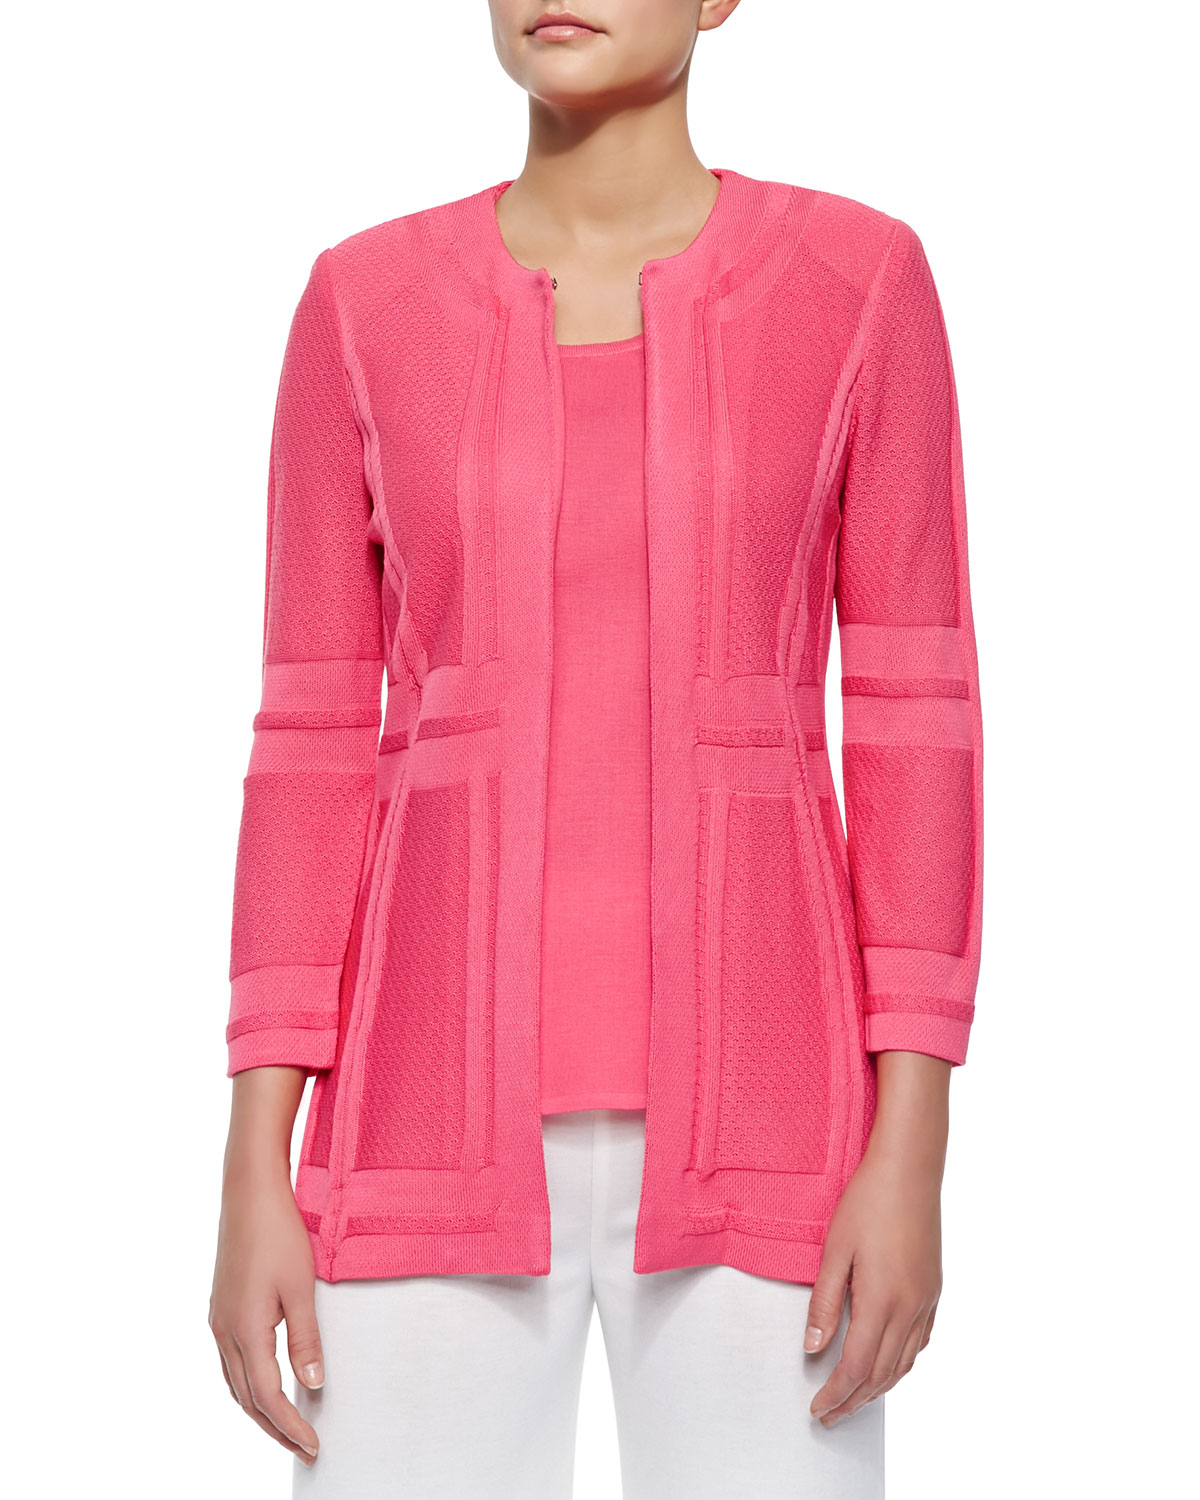 Paneled Knit Jacket, Papaya, Women's